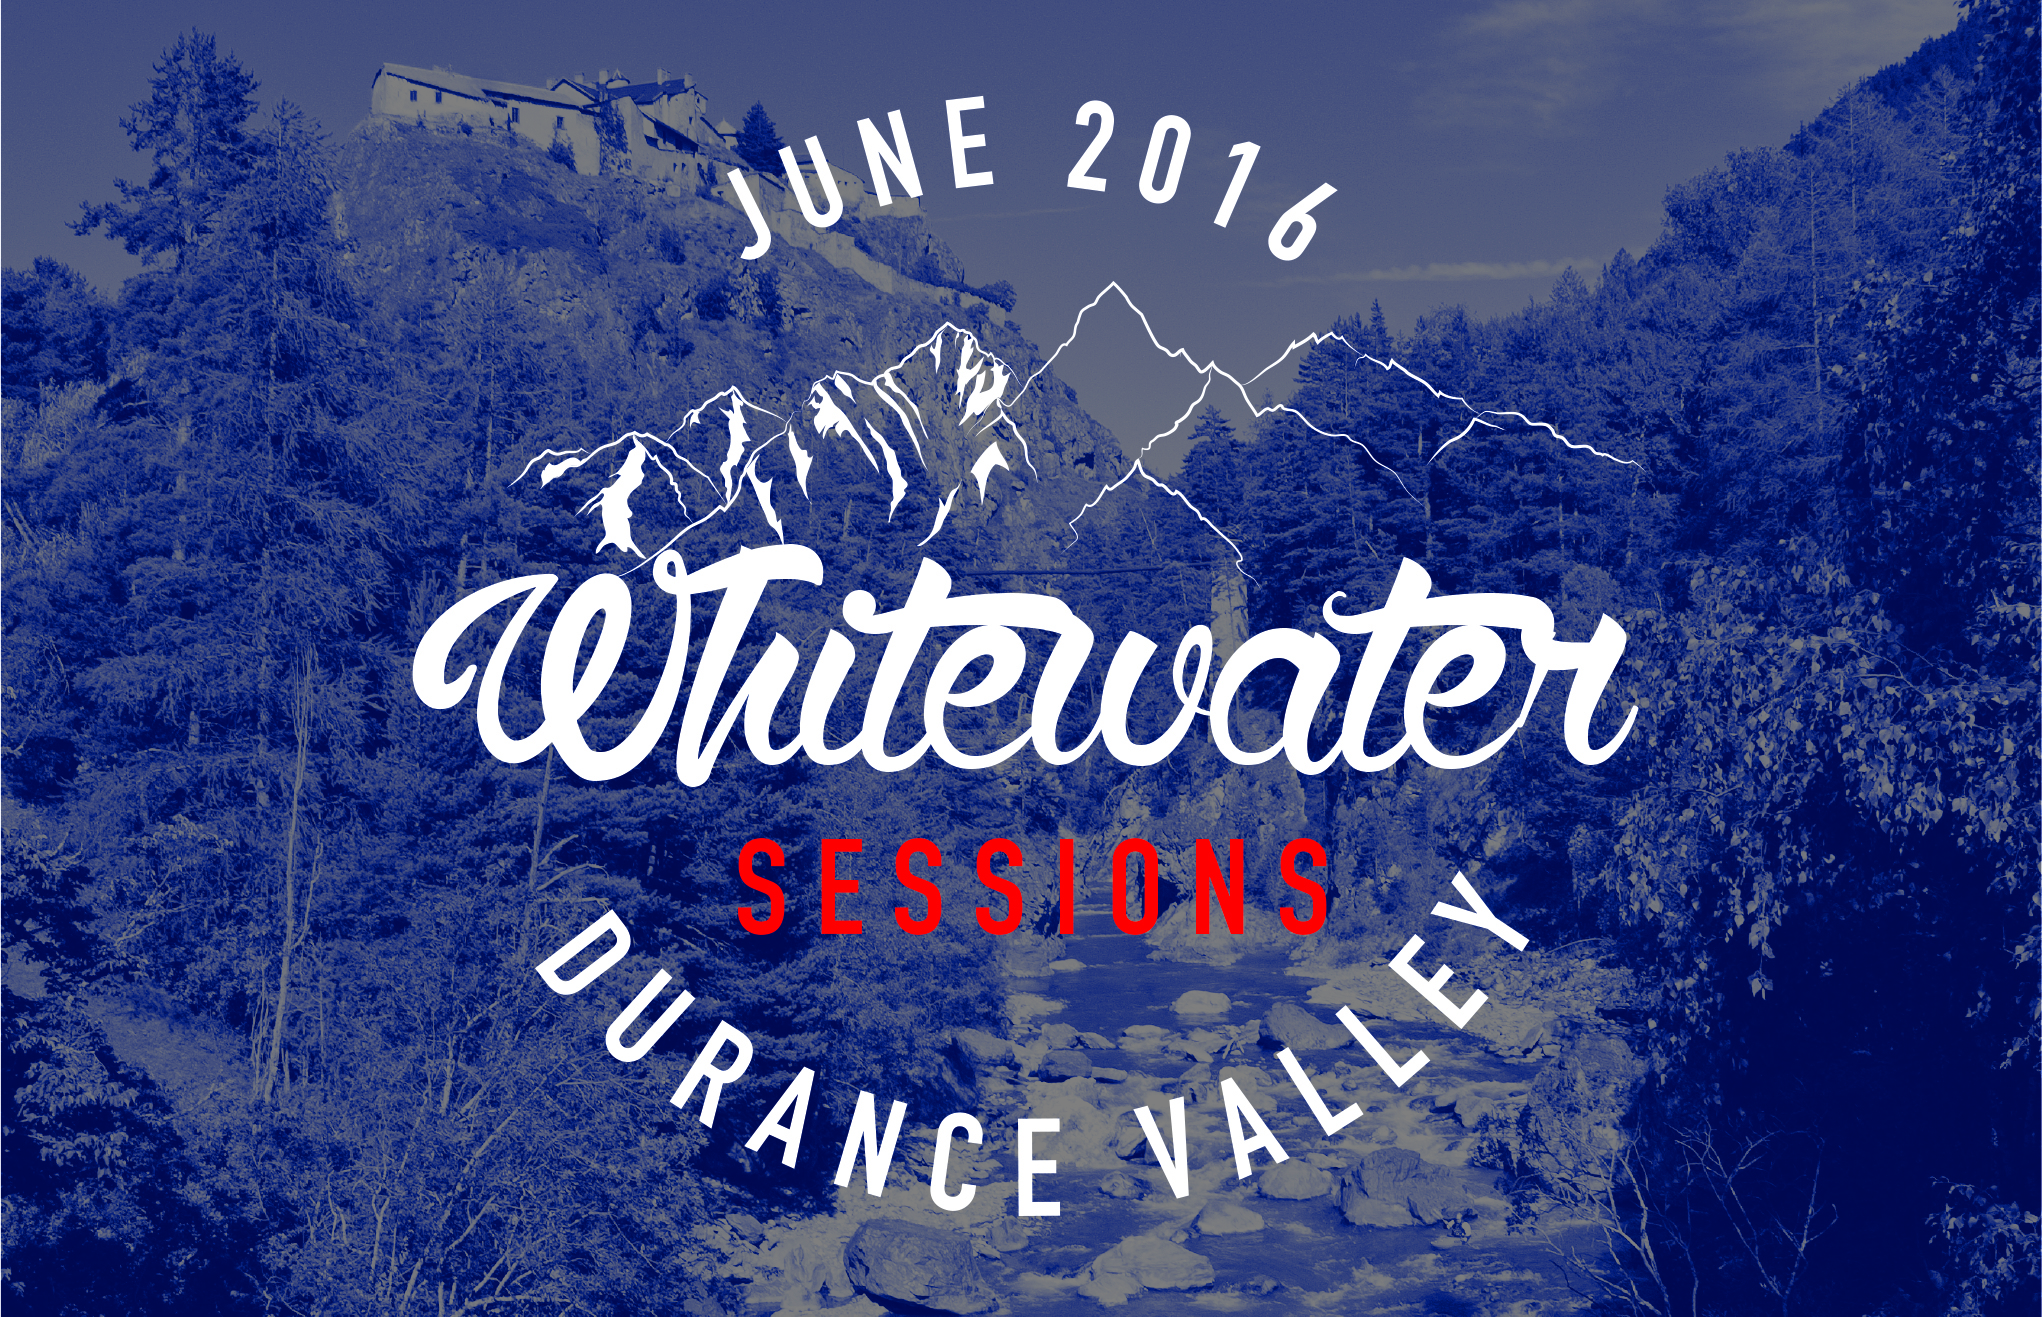 The Durance Valley Whitewater Sessions - Rabioux